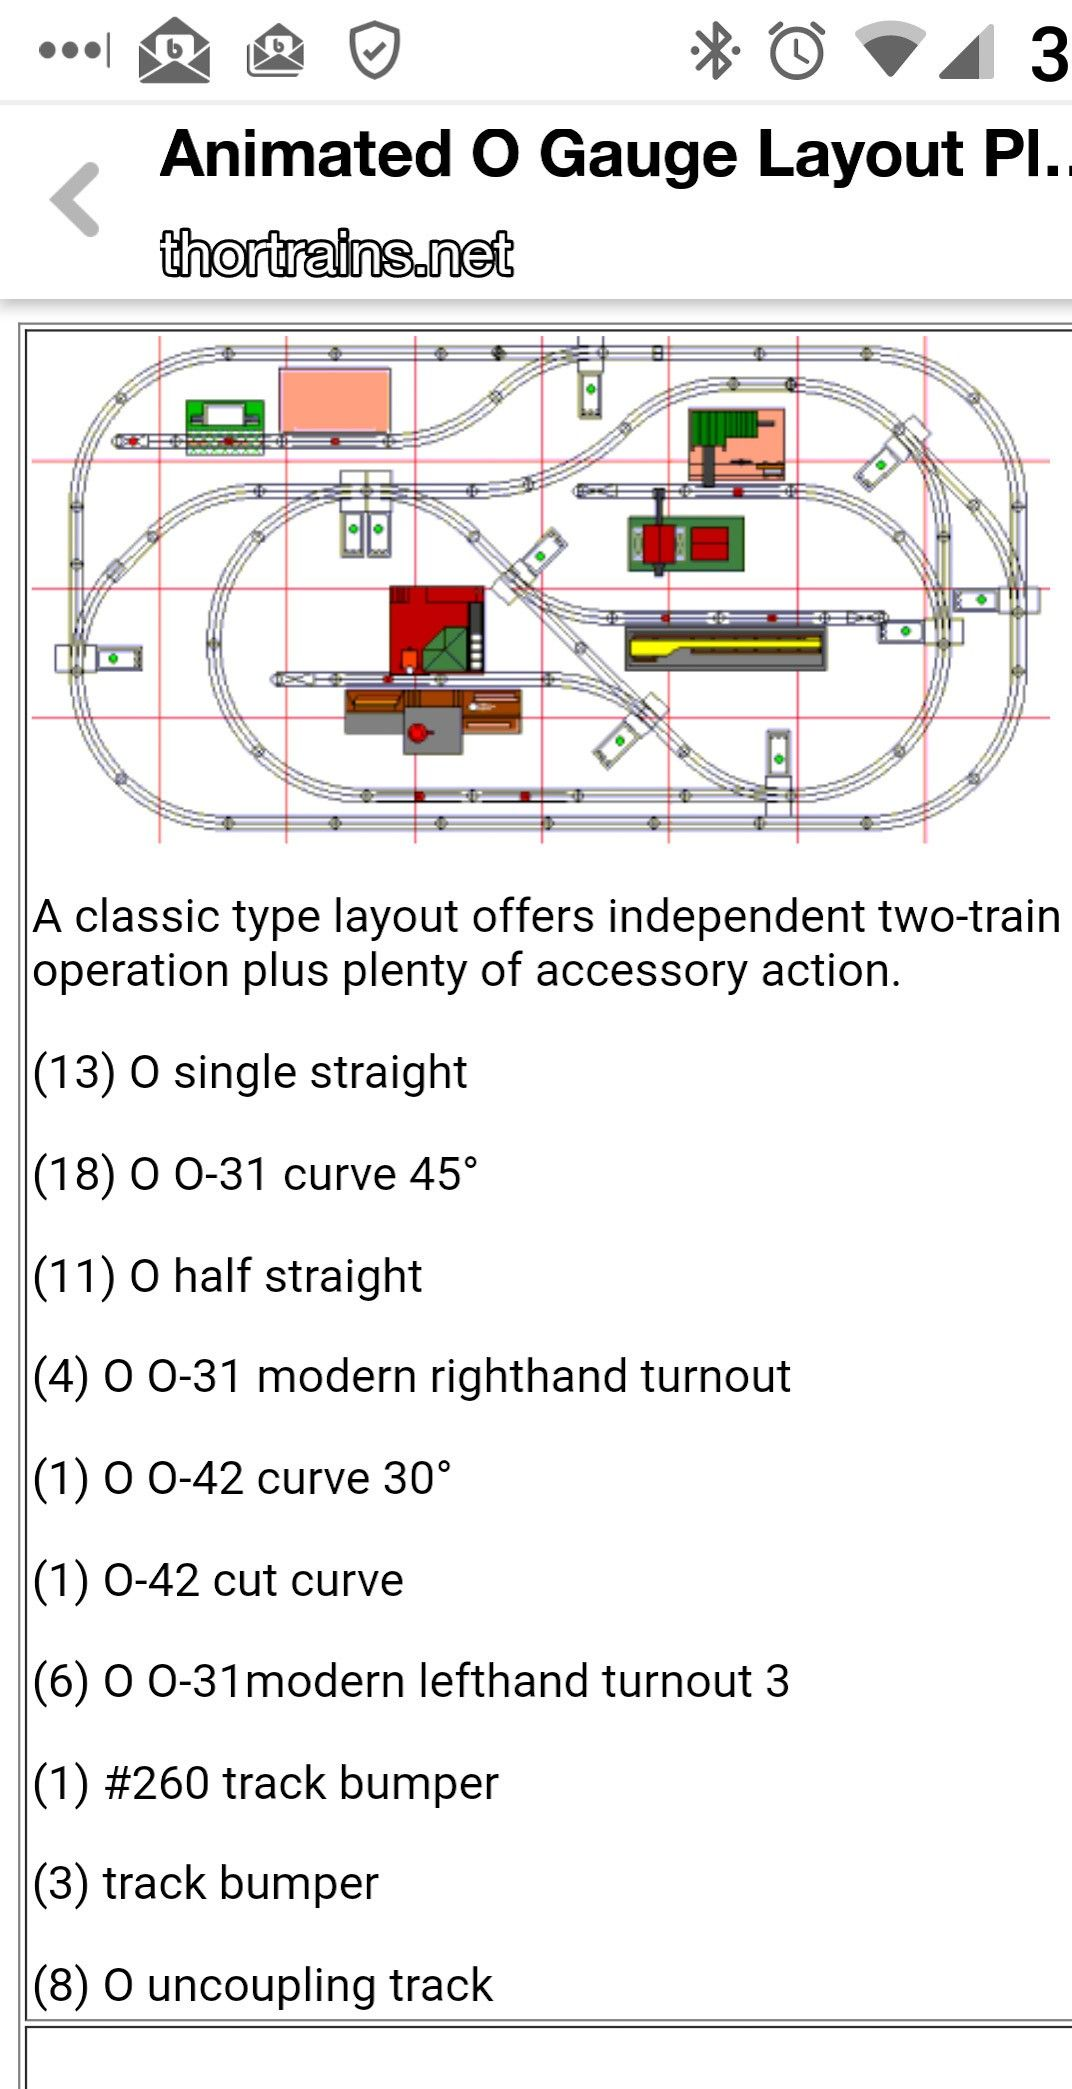 Find this Pin and more on Trains Model And Real by boxcarmike.